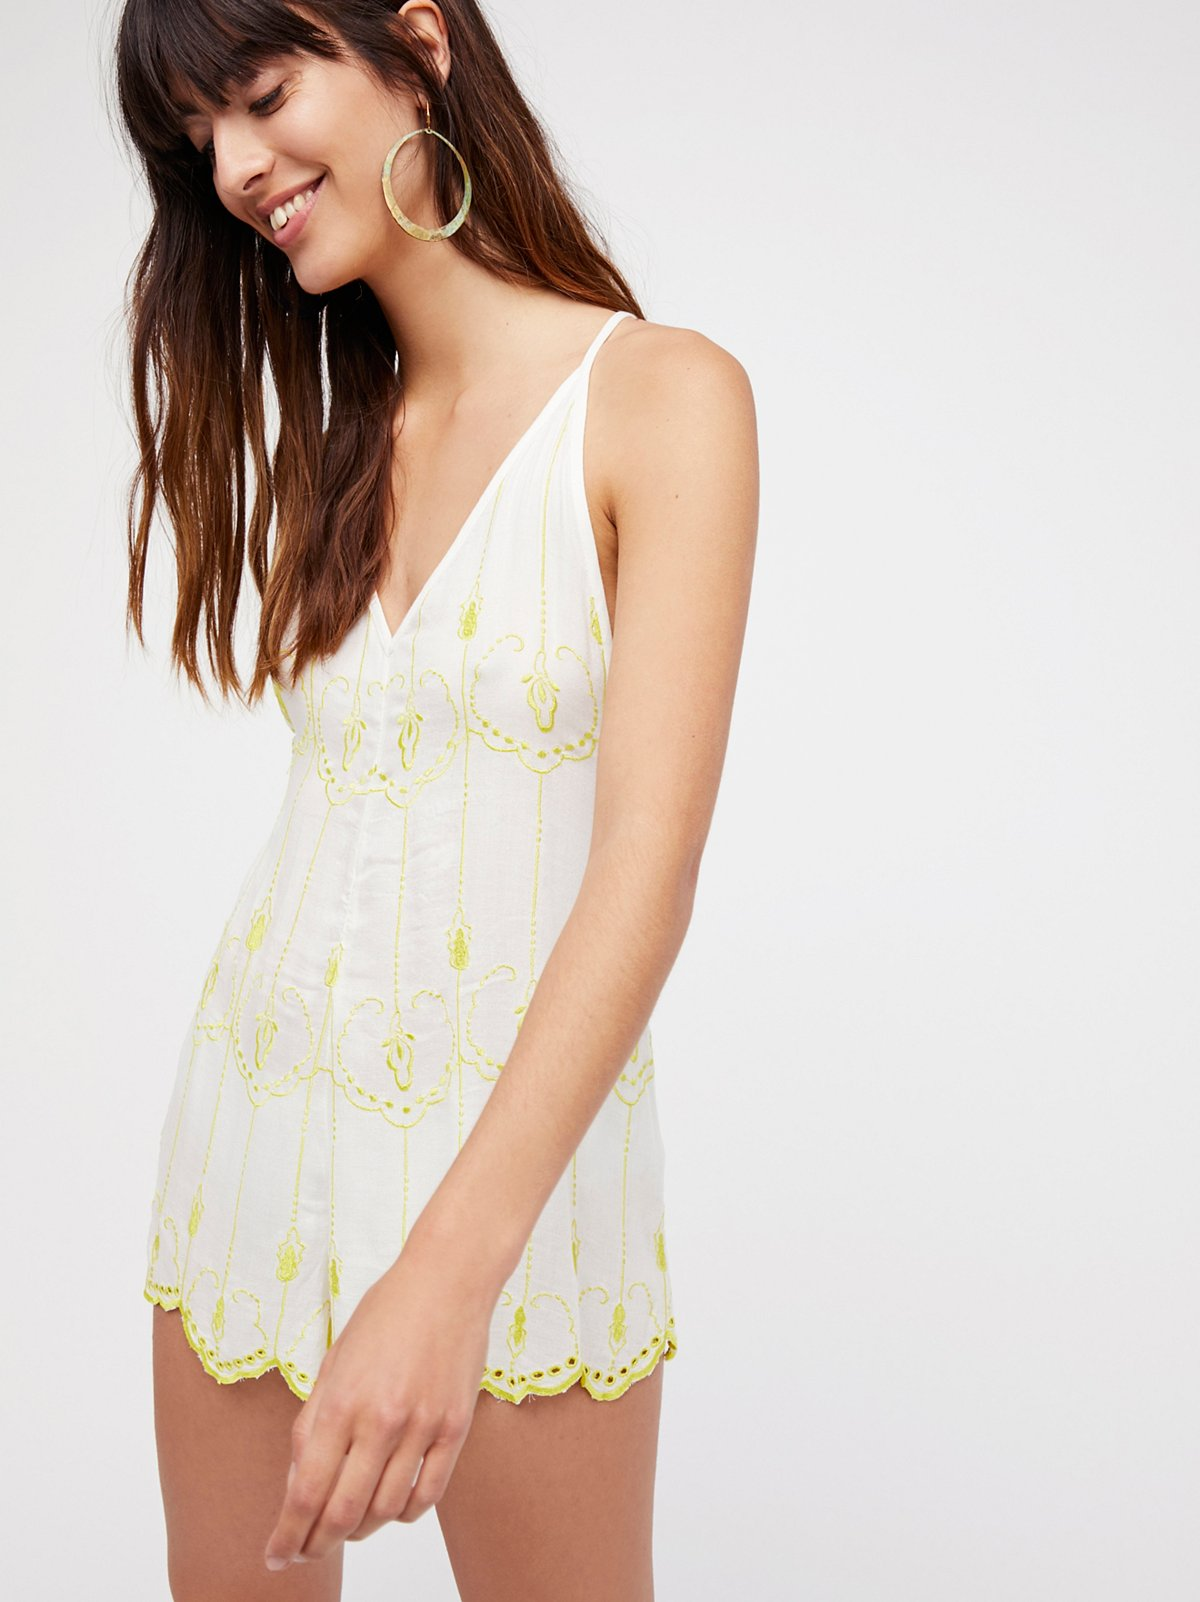 Boo Yah Embroidered Playsuit